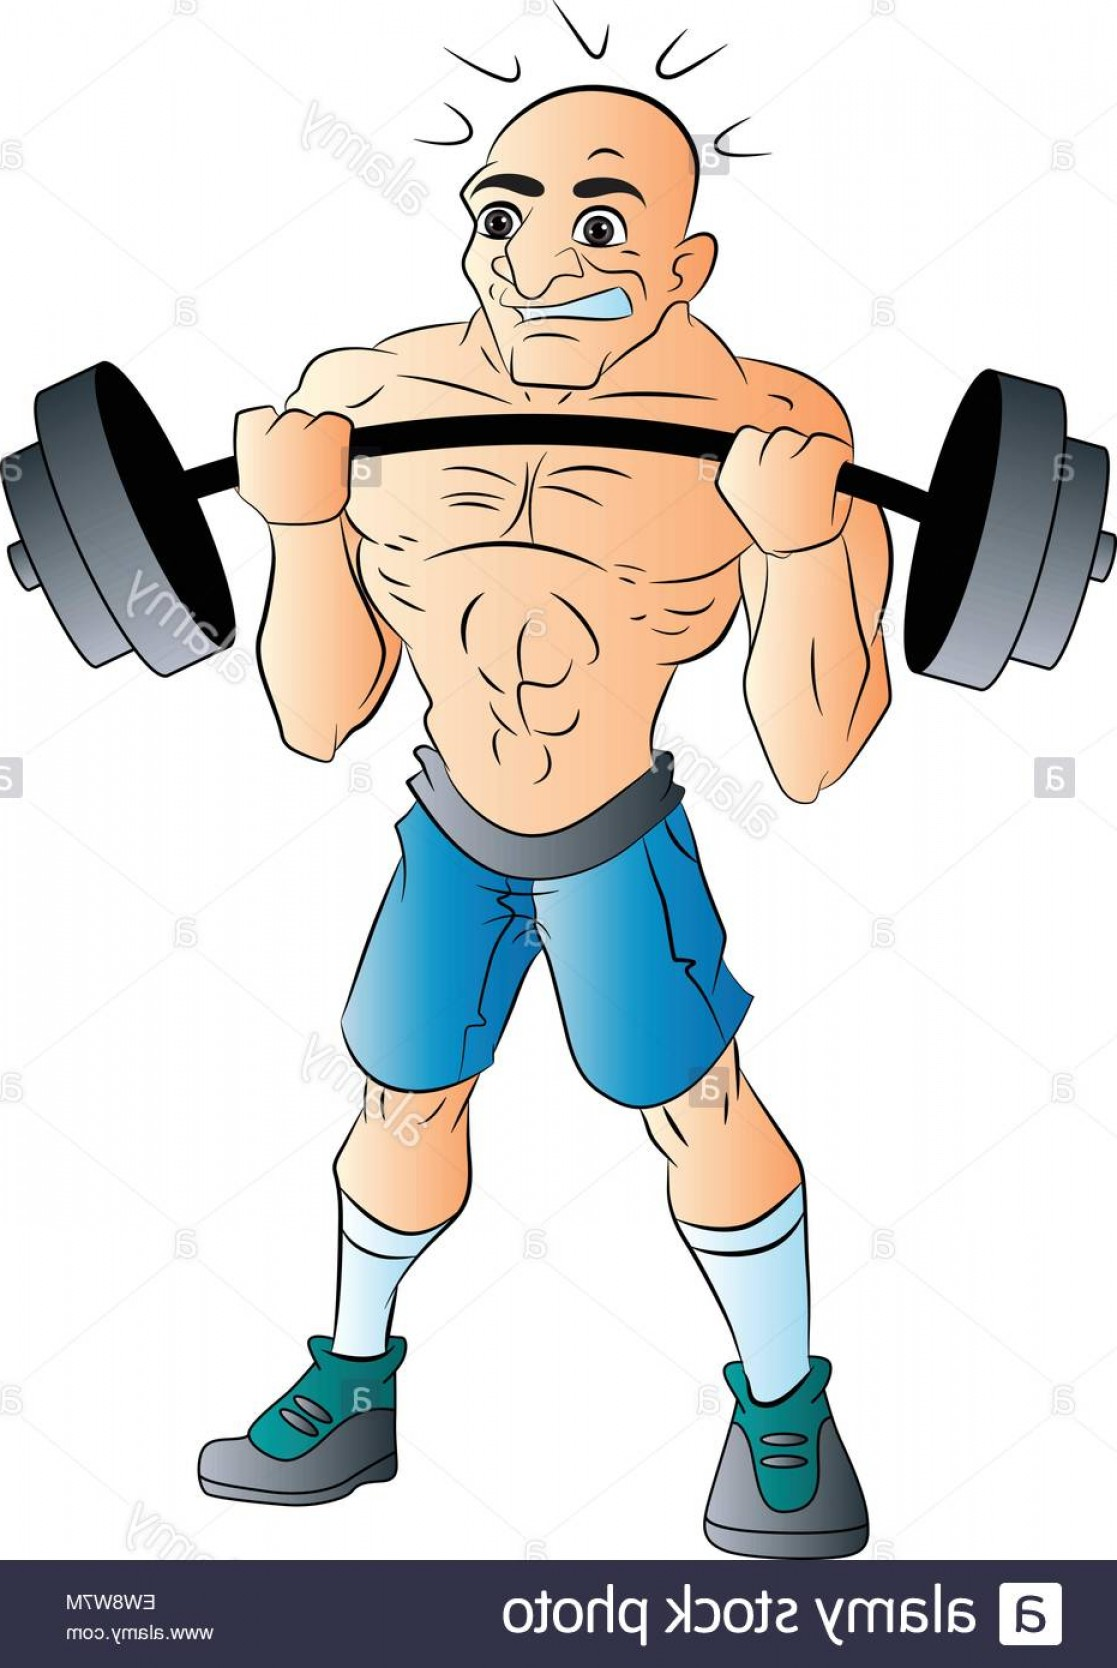 Weightlifter Vector Art: Stock Photo Bald Male Weightlifter Vector Illustration